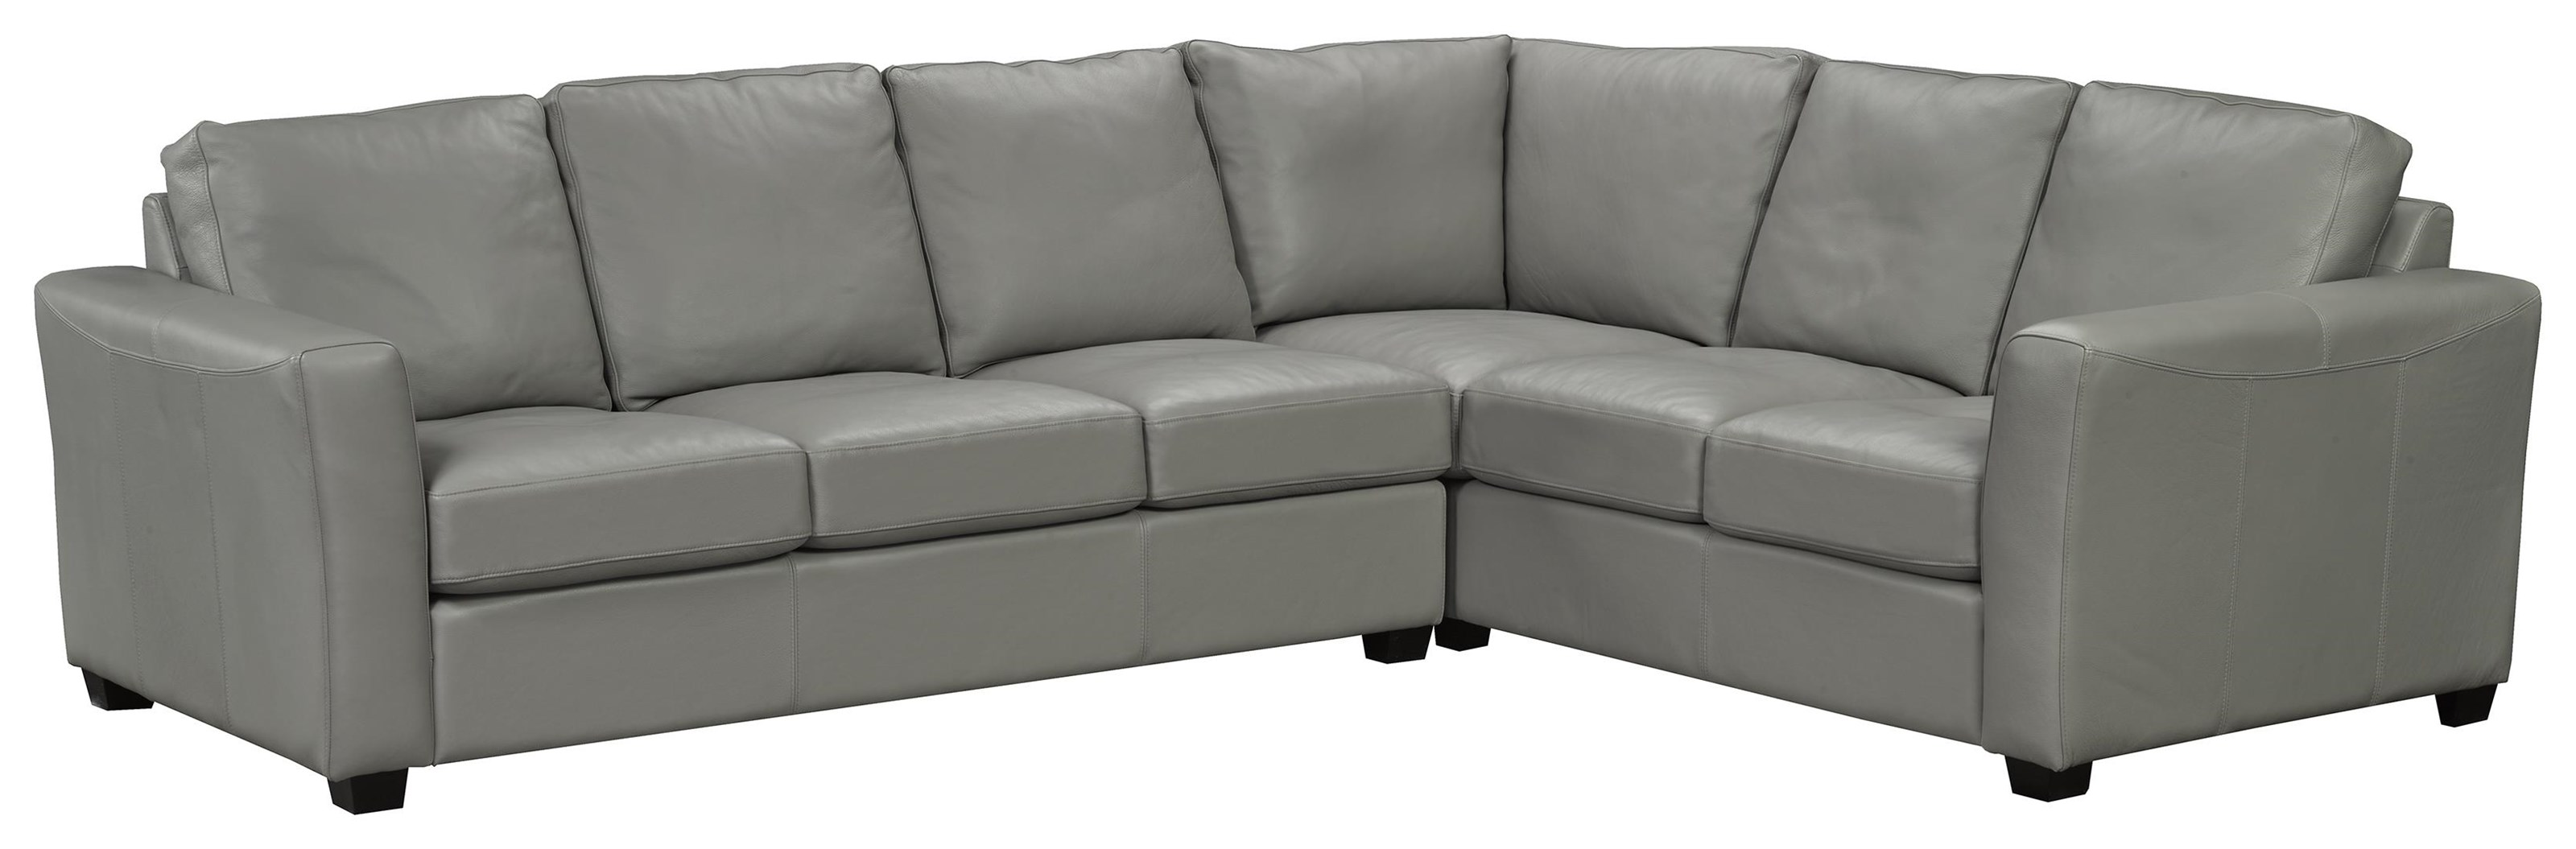 Brentwood Classics 1508 2 PCE SECTIONAL - Item Number: 190.150801